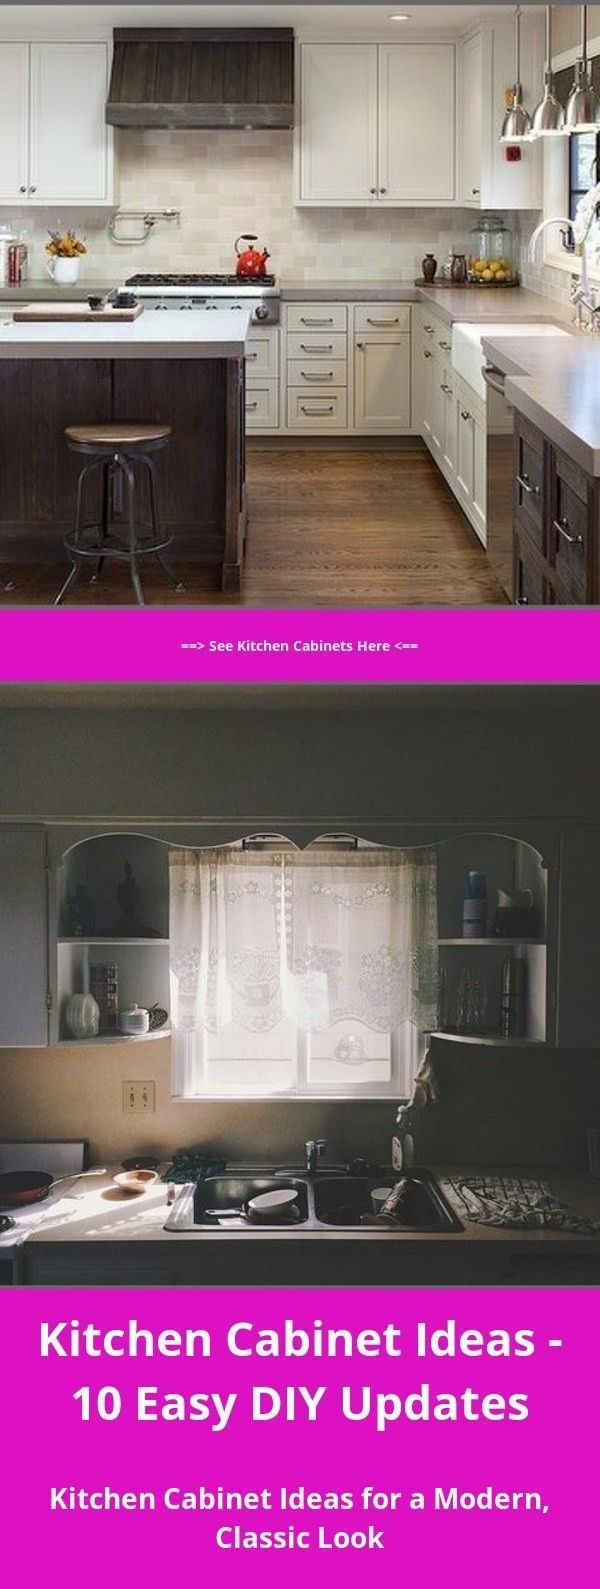 Cheap kitchen cabinet add-ons you can diy and diy kitchen